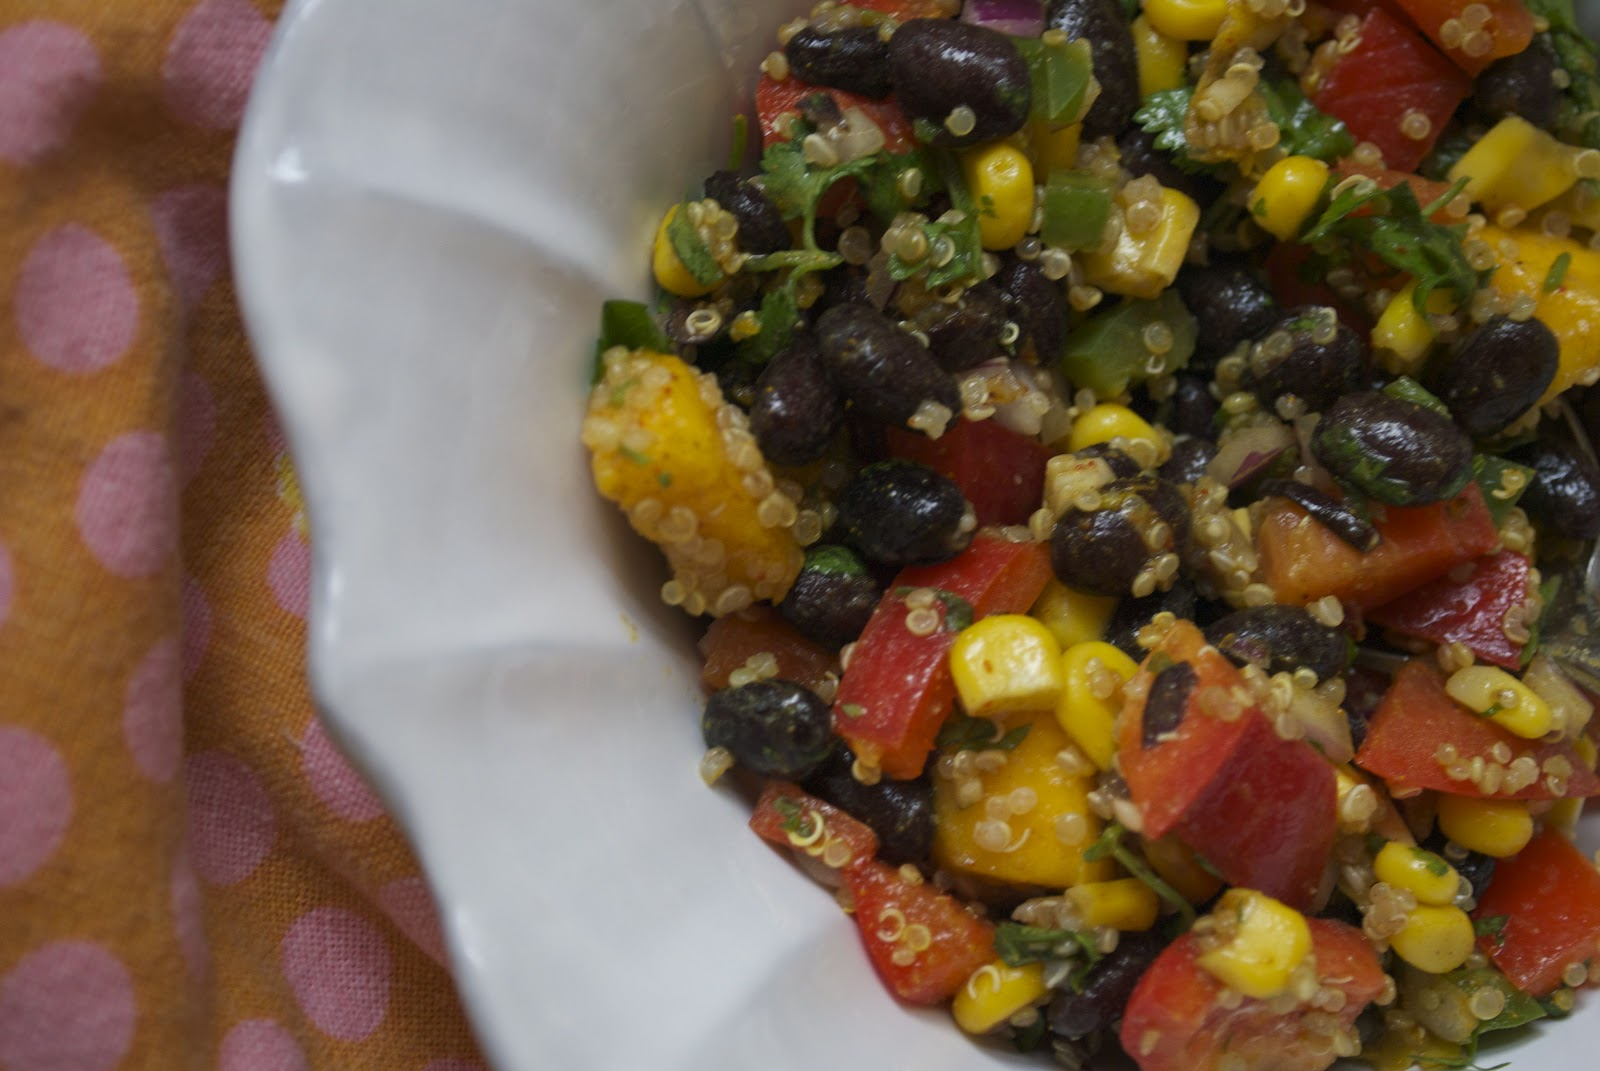 Southwestern Black Bean, Qunioa and Mango Medley